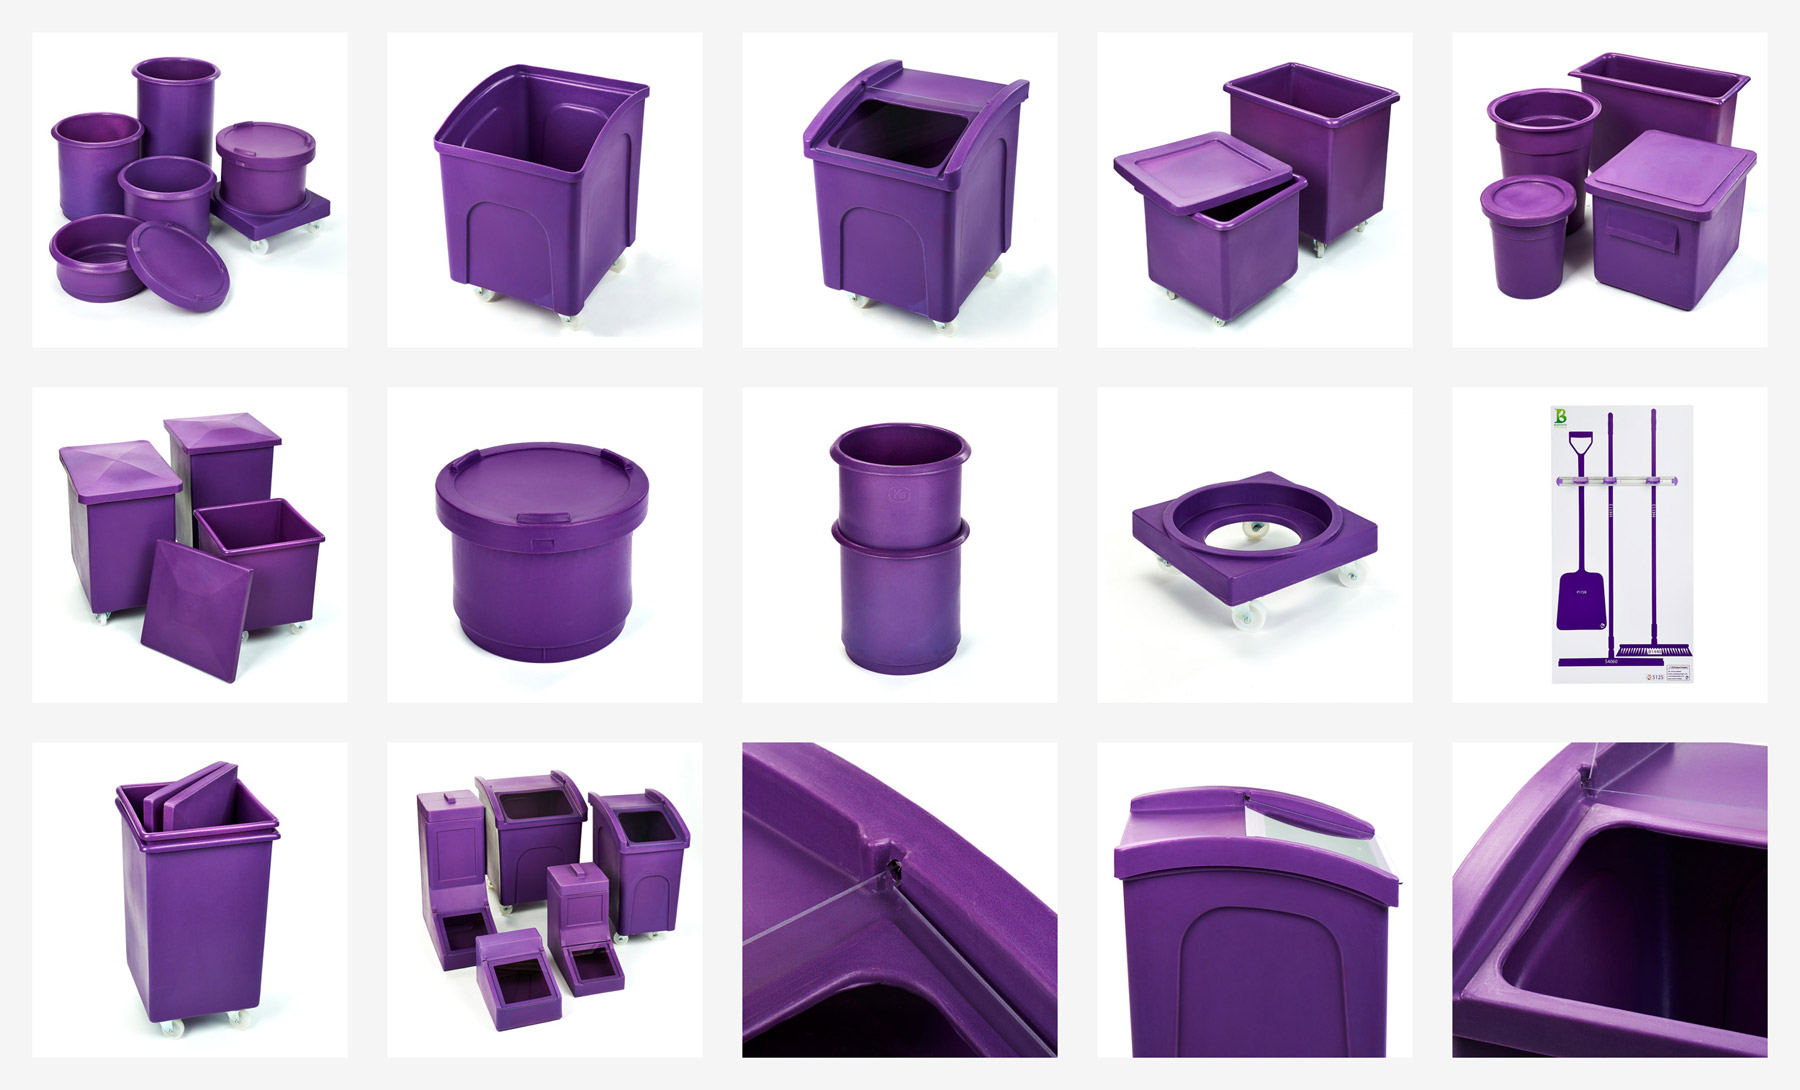 A series of purple products on a white background